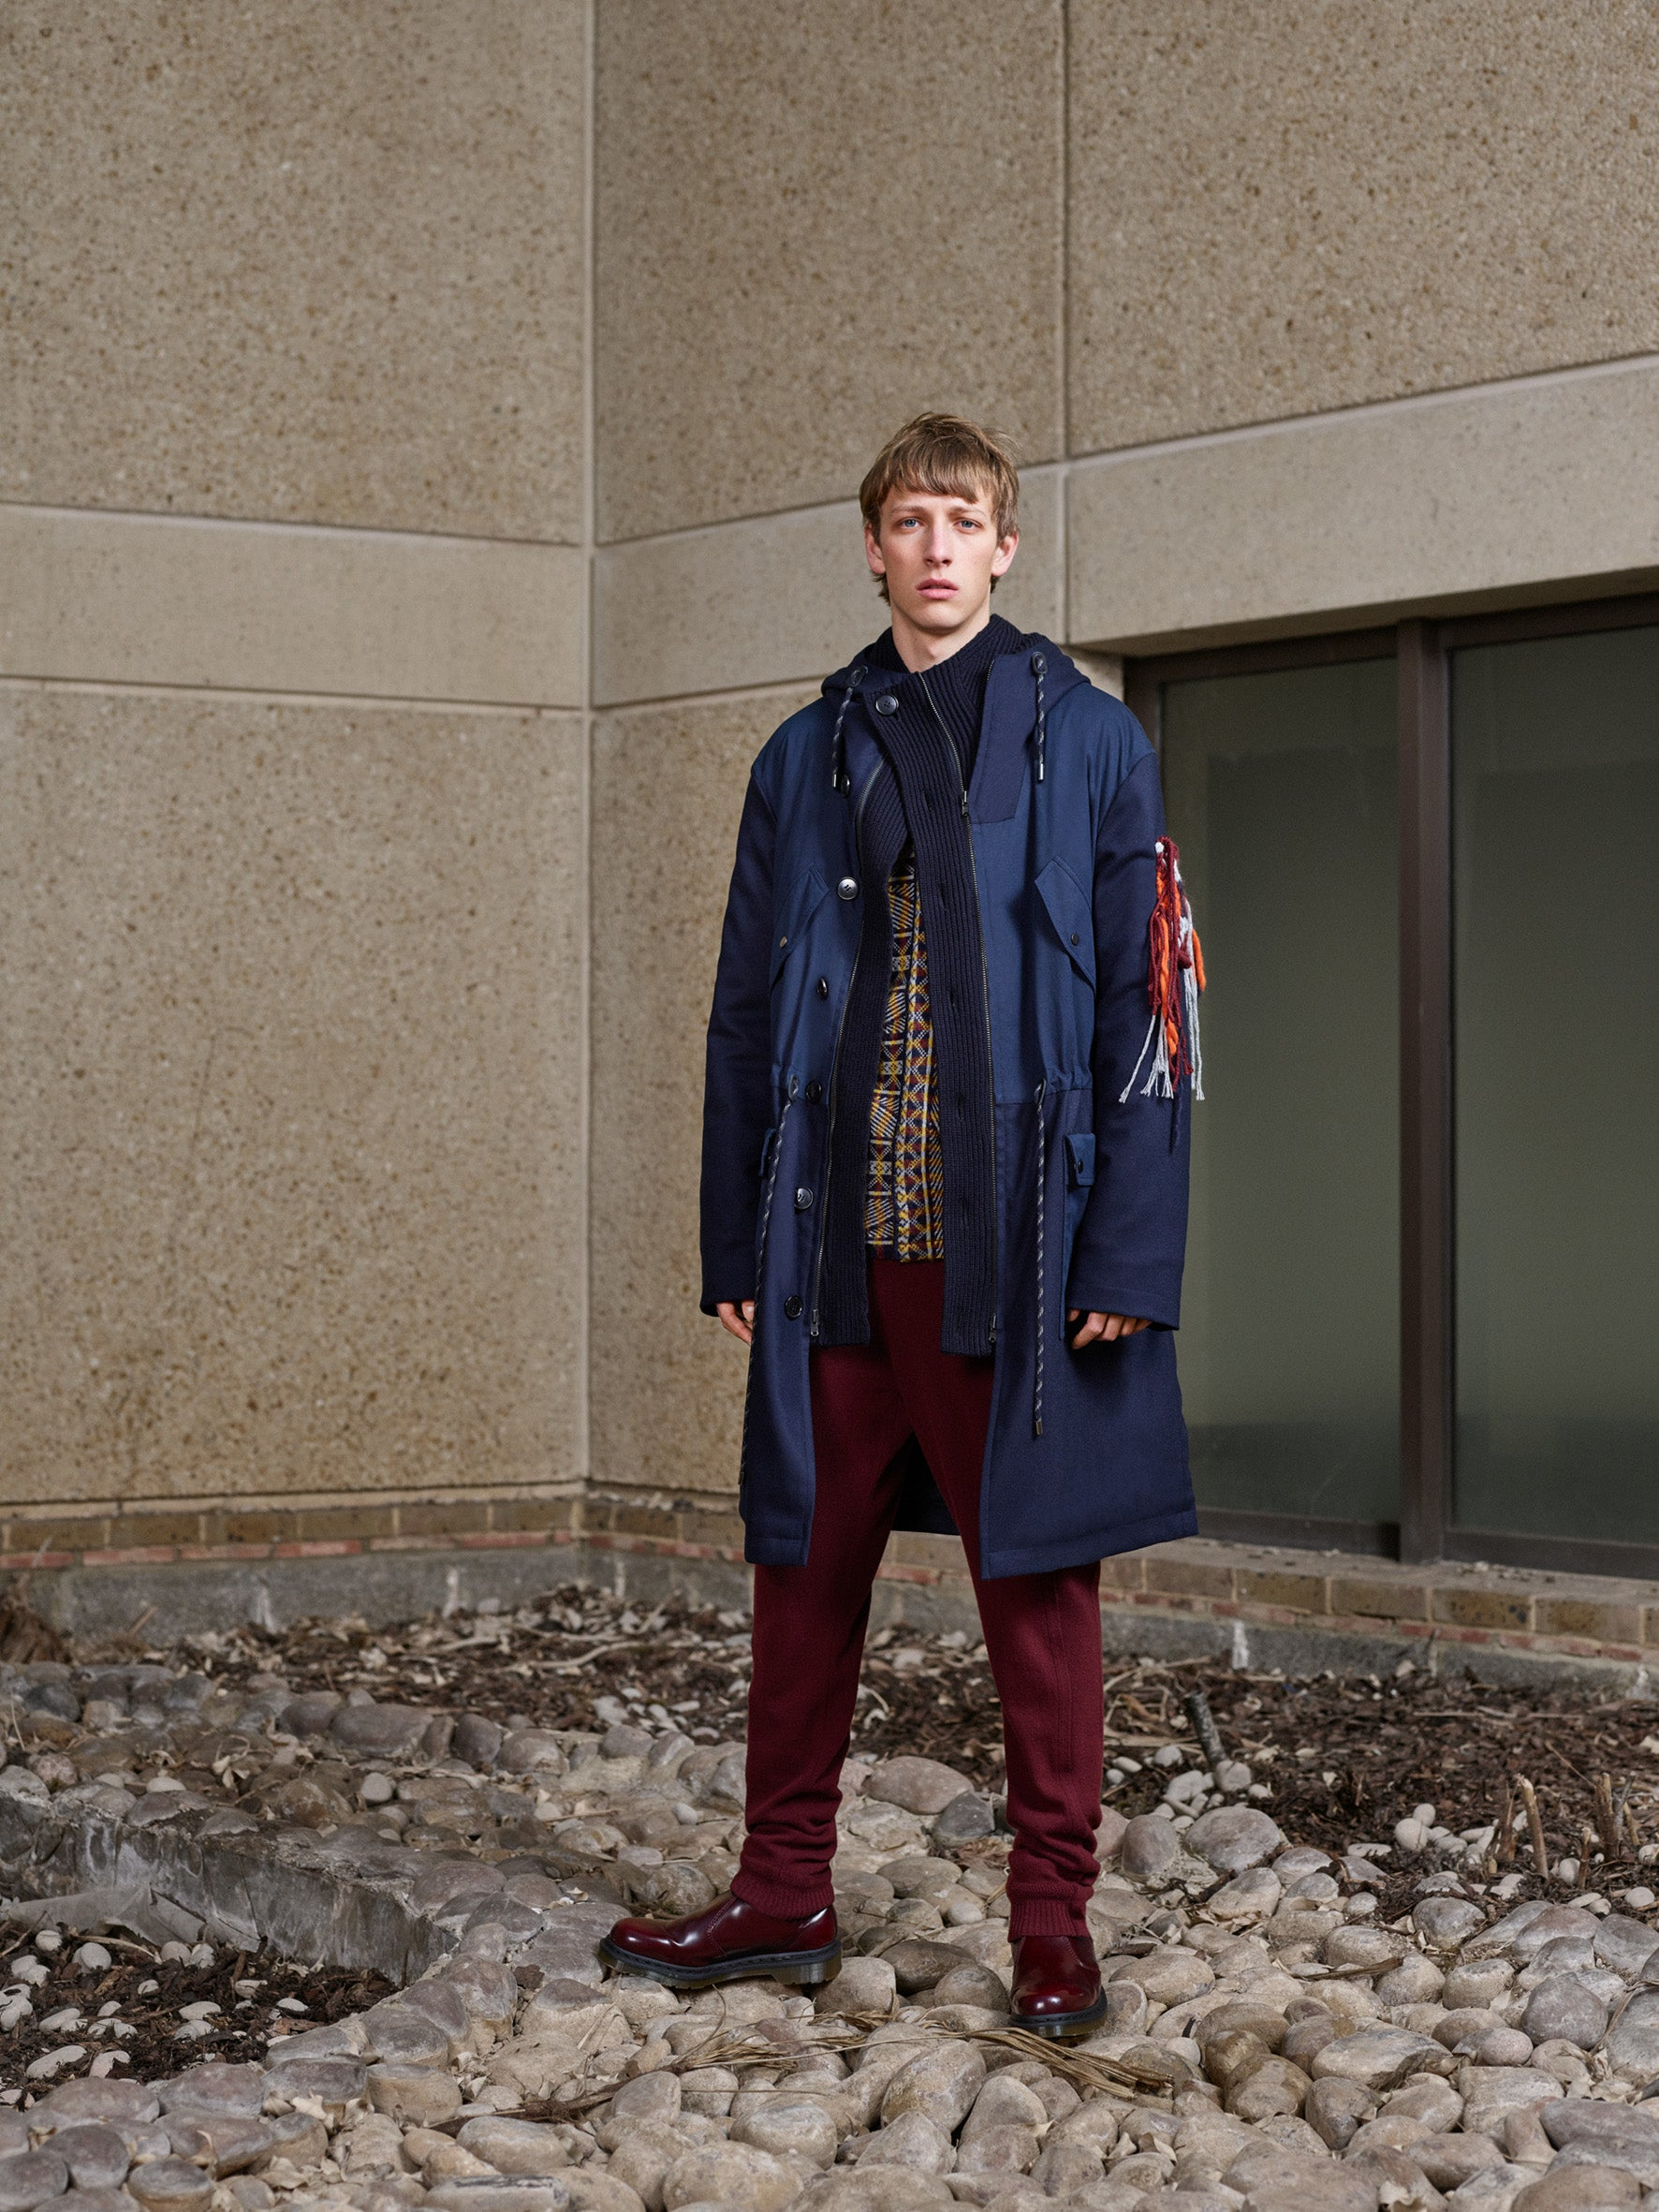 Pringle of Scotland Men's Autumn Winter '18 Look 9